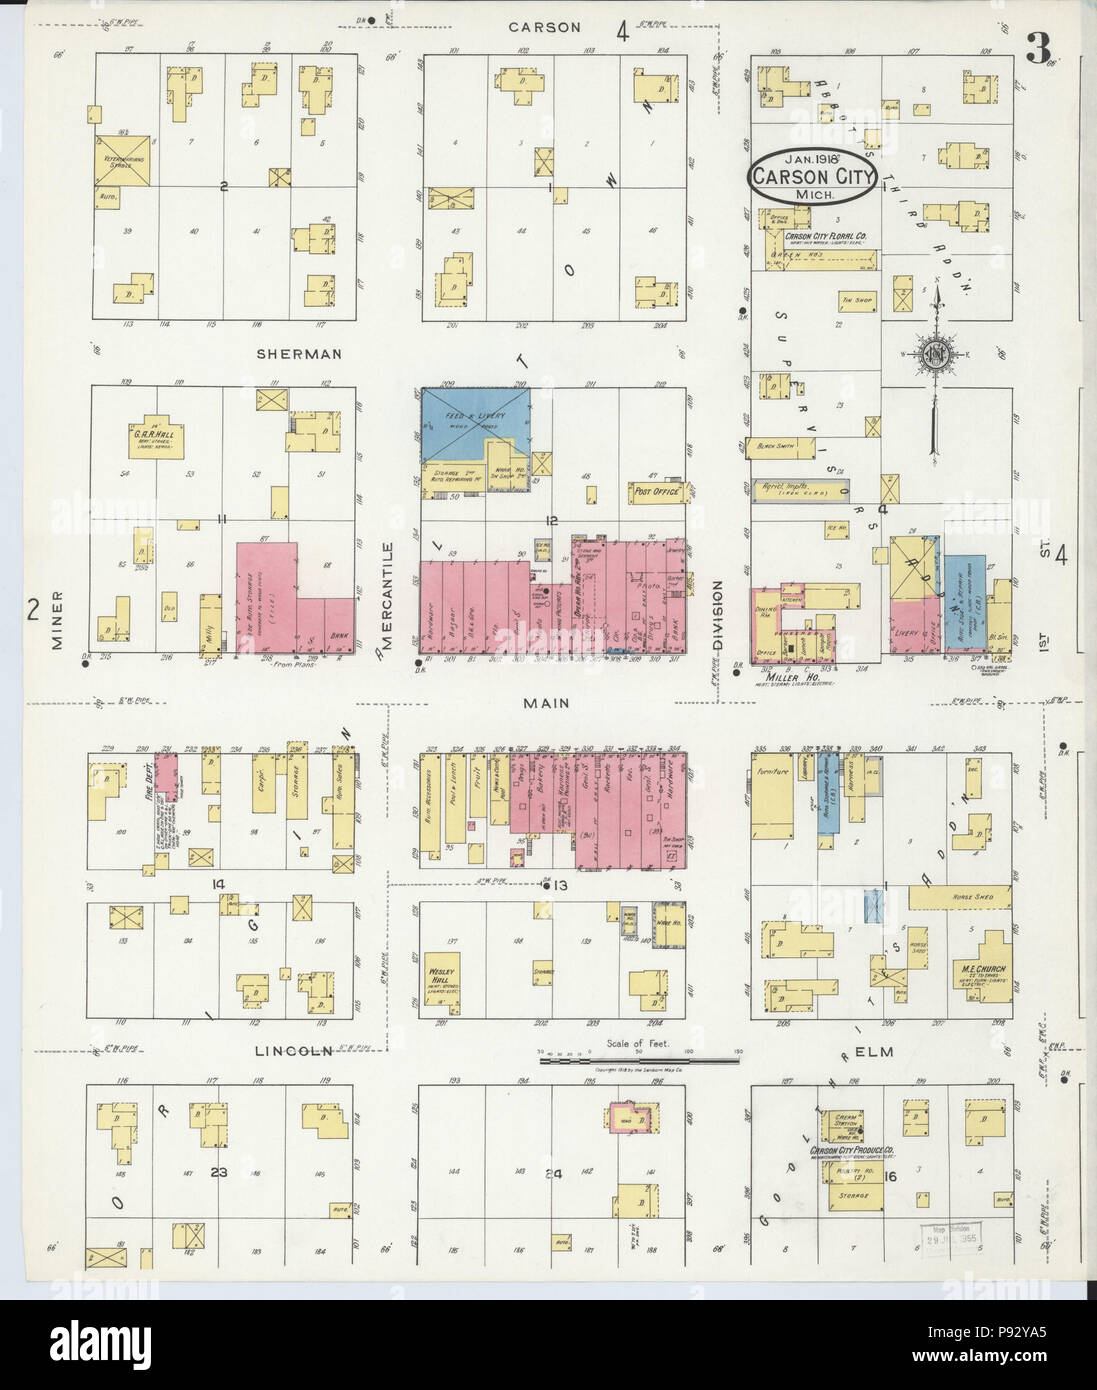 493 Sanborn Fire Insurance Map From Carson City Montcalm County